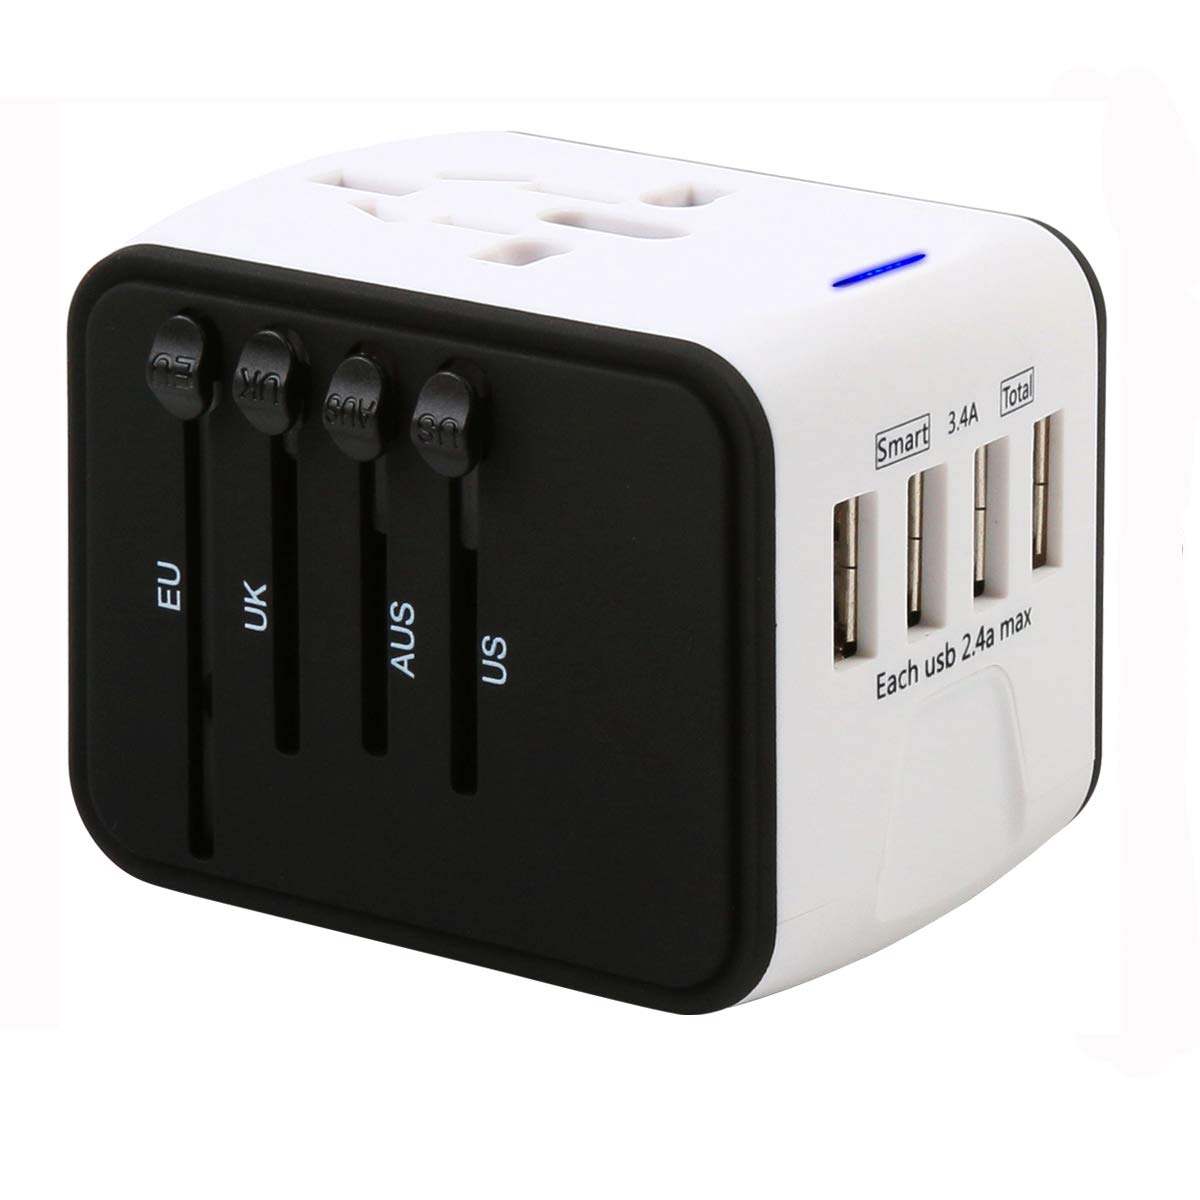 ASKALI Outlet Converter Plug Adapter for Worldwide Travel - Universal 4 USB Ports Wall Charger for Andriod Apple Phone US UK AU EU JP - World Multi Plugs Converter, NOT Convert Voltage (White)